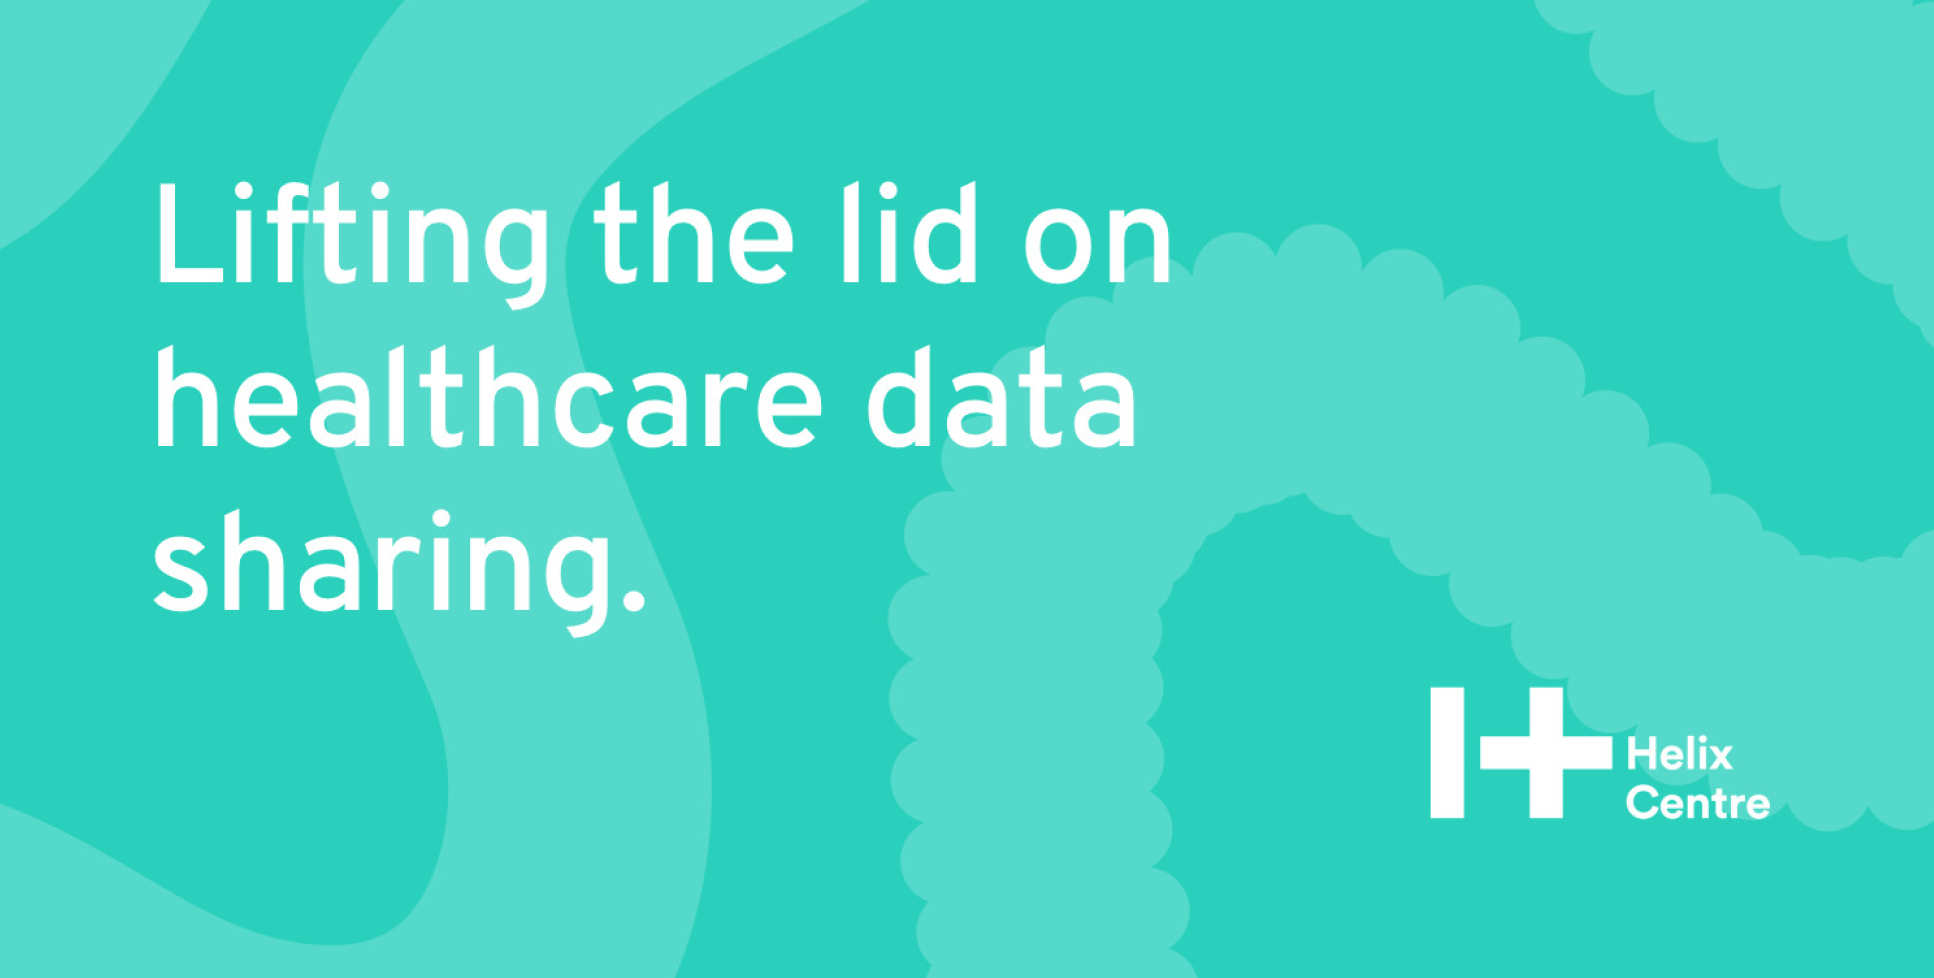 Lifting the lid on healthcare data sharing